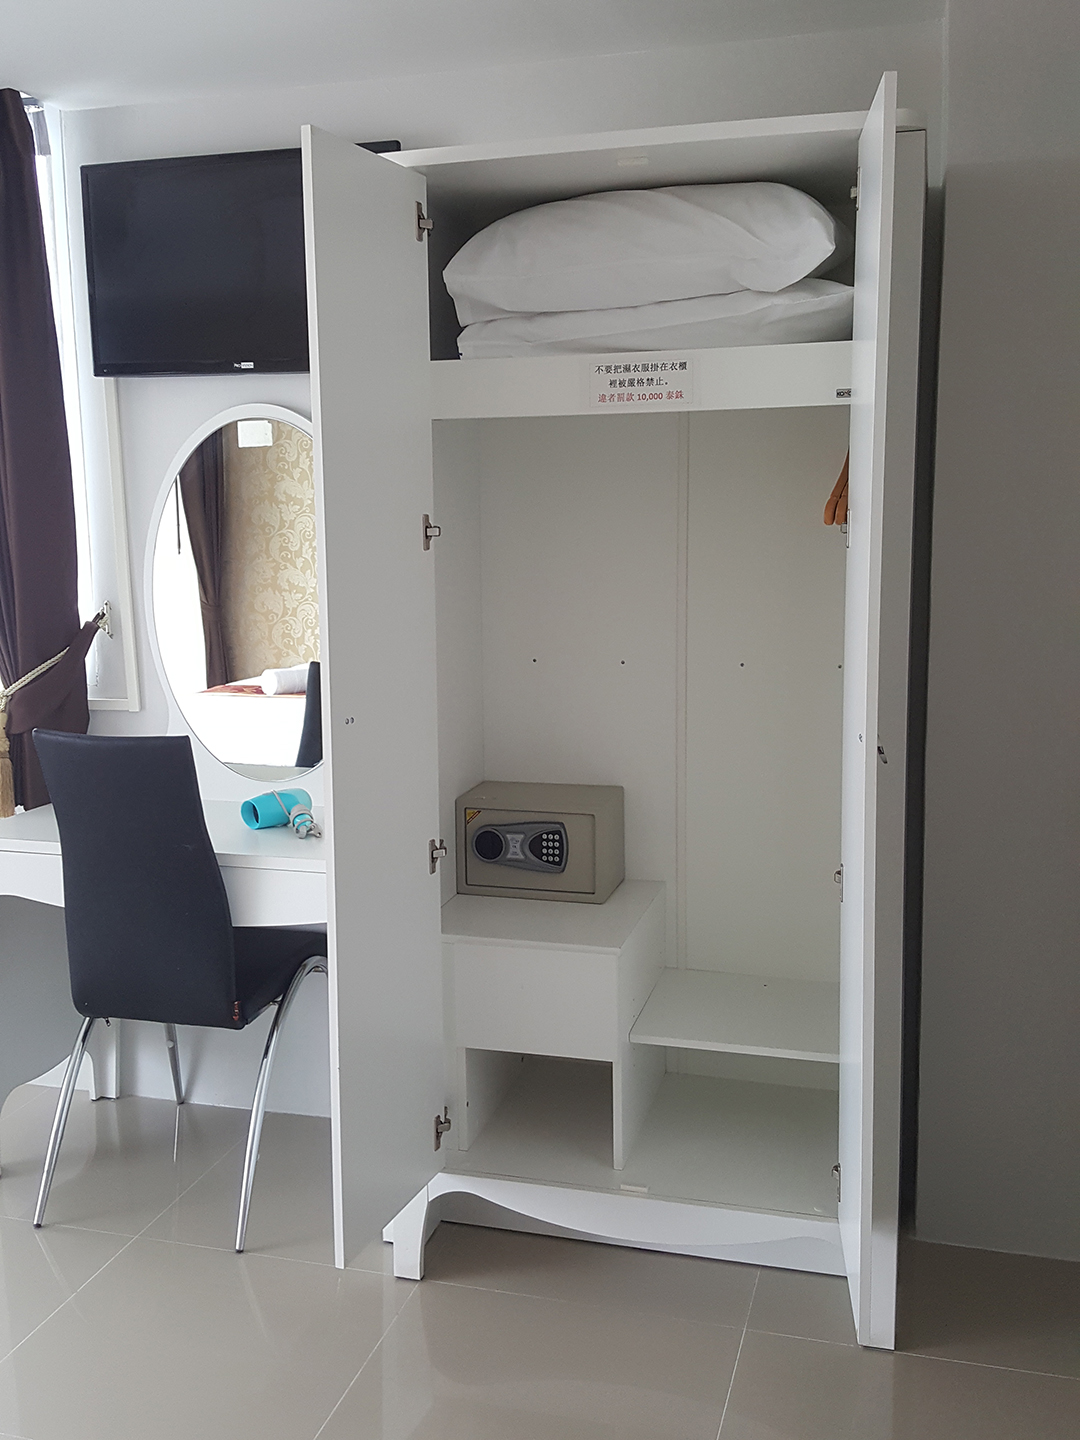 http://retreat-resort.com/images/retreat-resort/our-rooms/OurCabinets.jpg